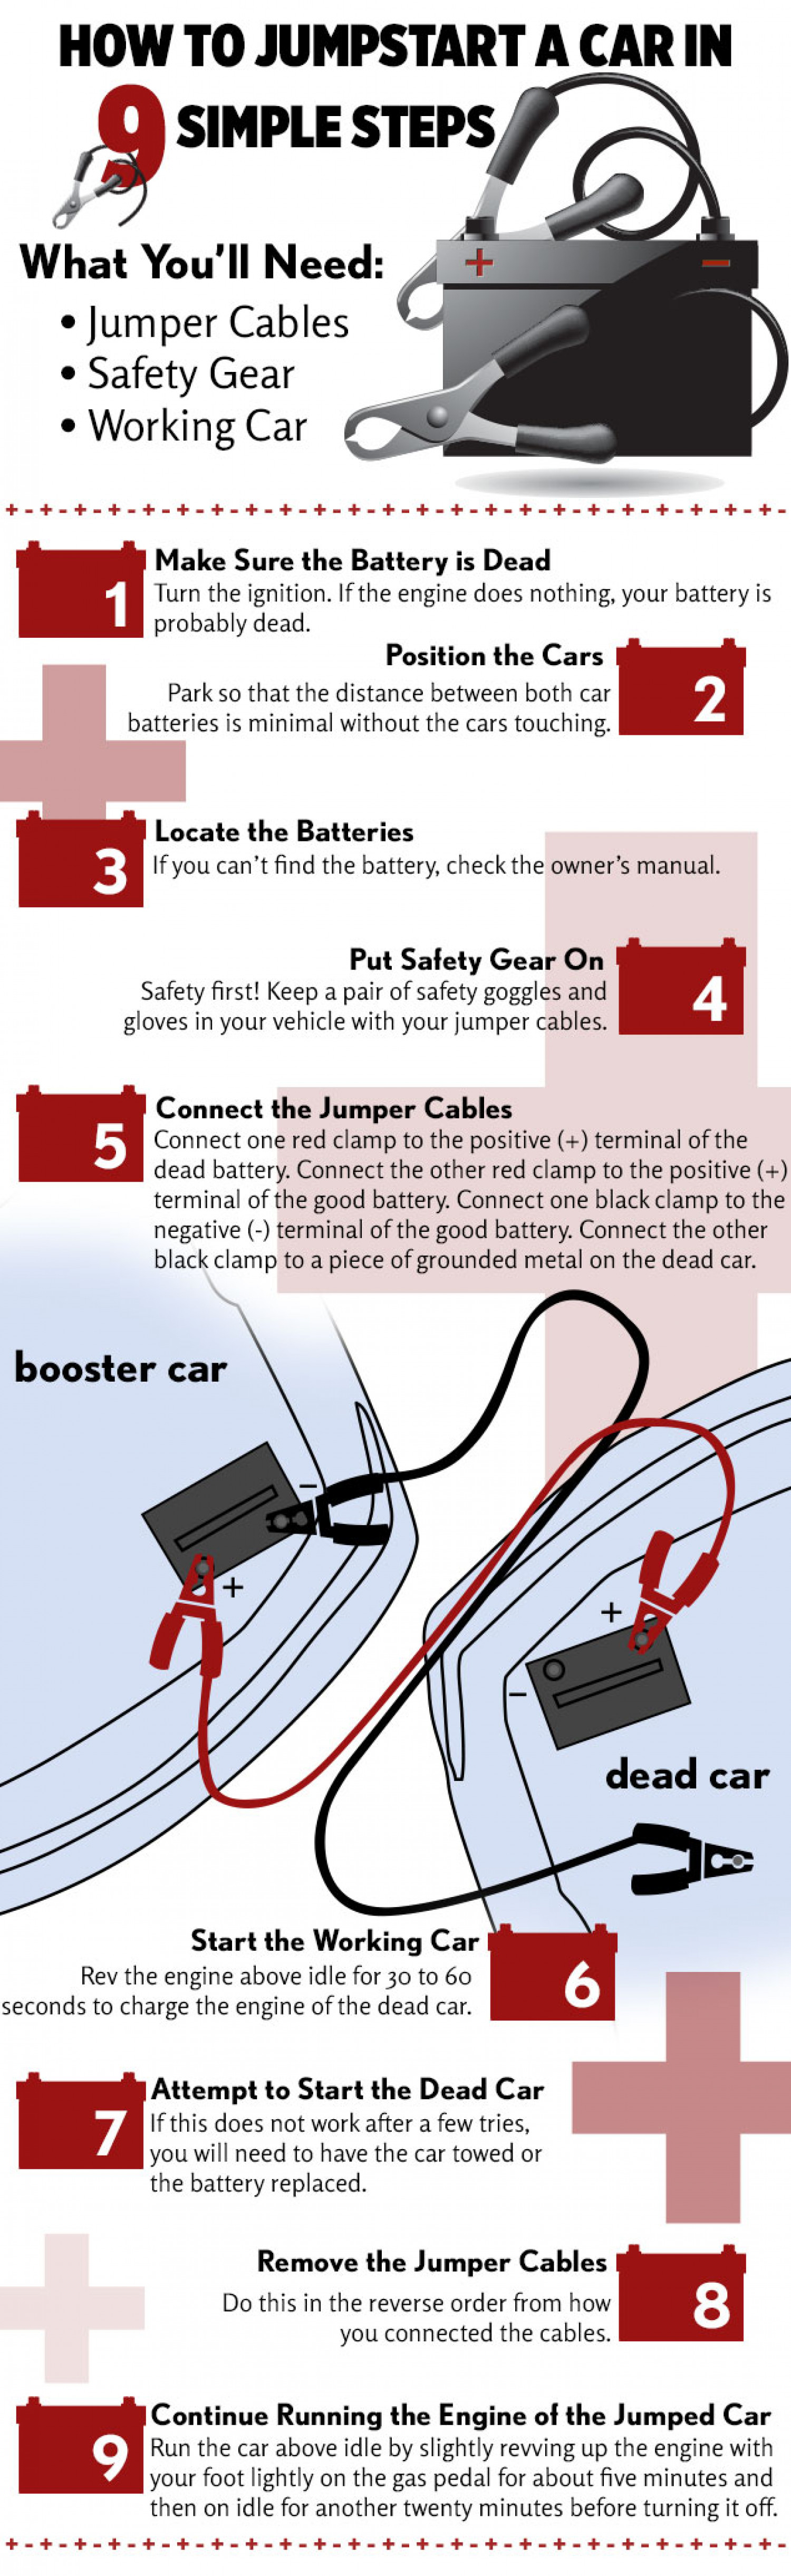 How to Jumpstart a Car in 9 Simple Steps Infographic